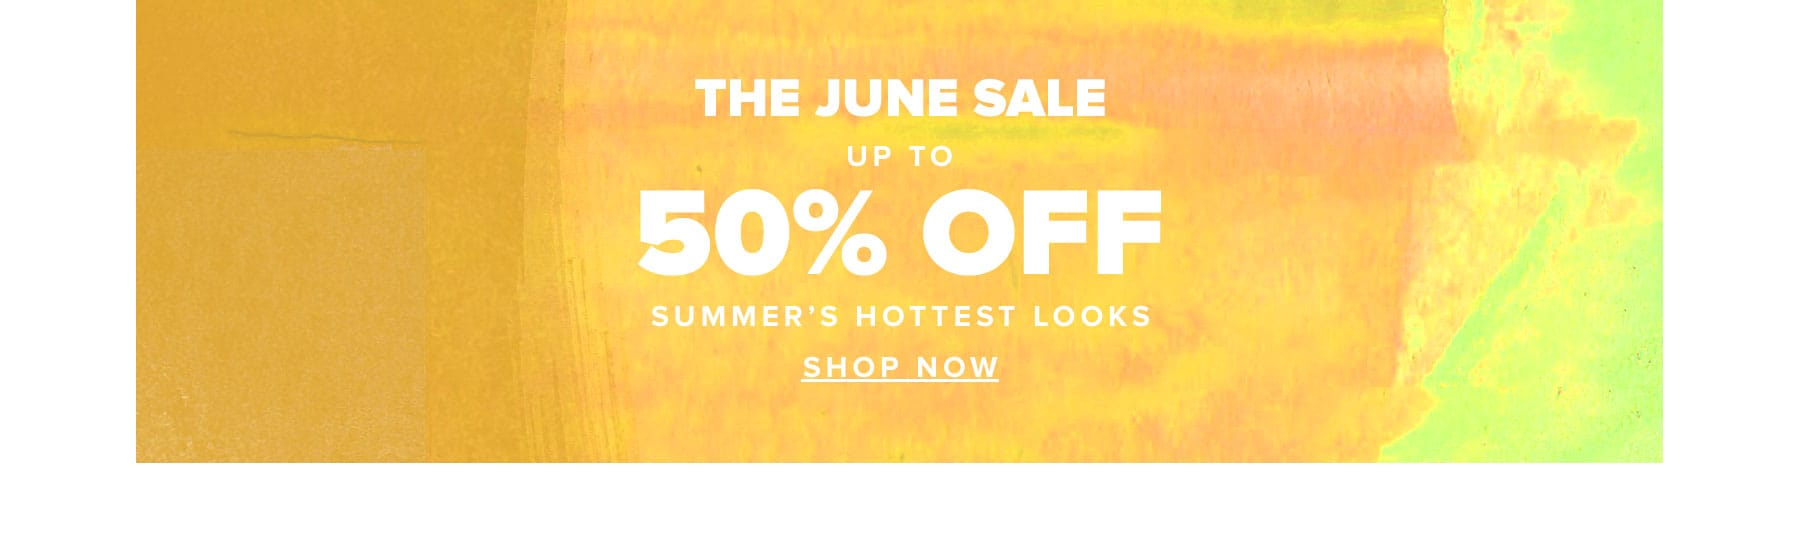 The June Sale. Up to 50% off summer's hottest looks. Shop Now.